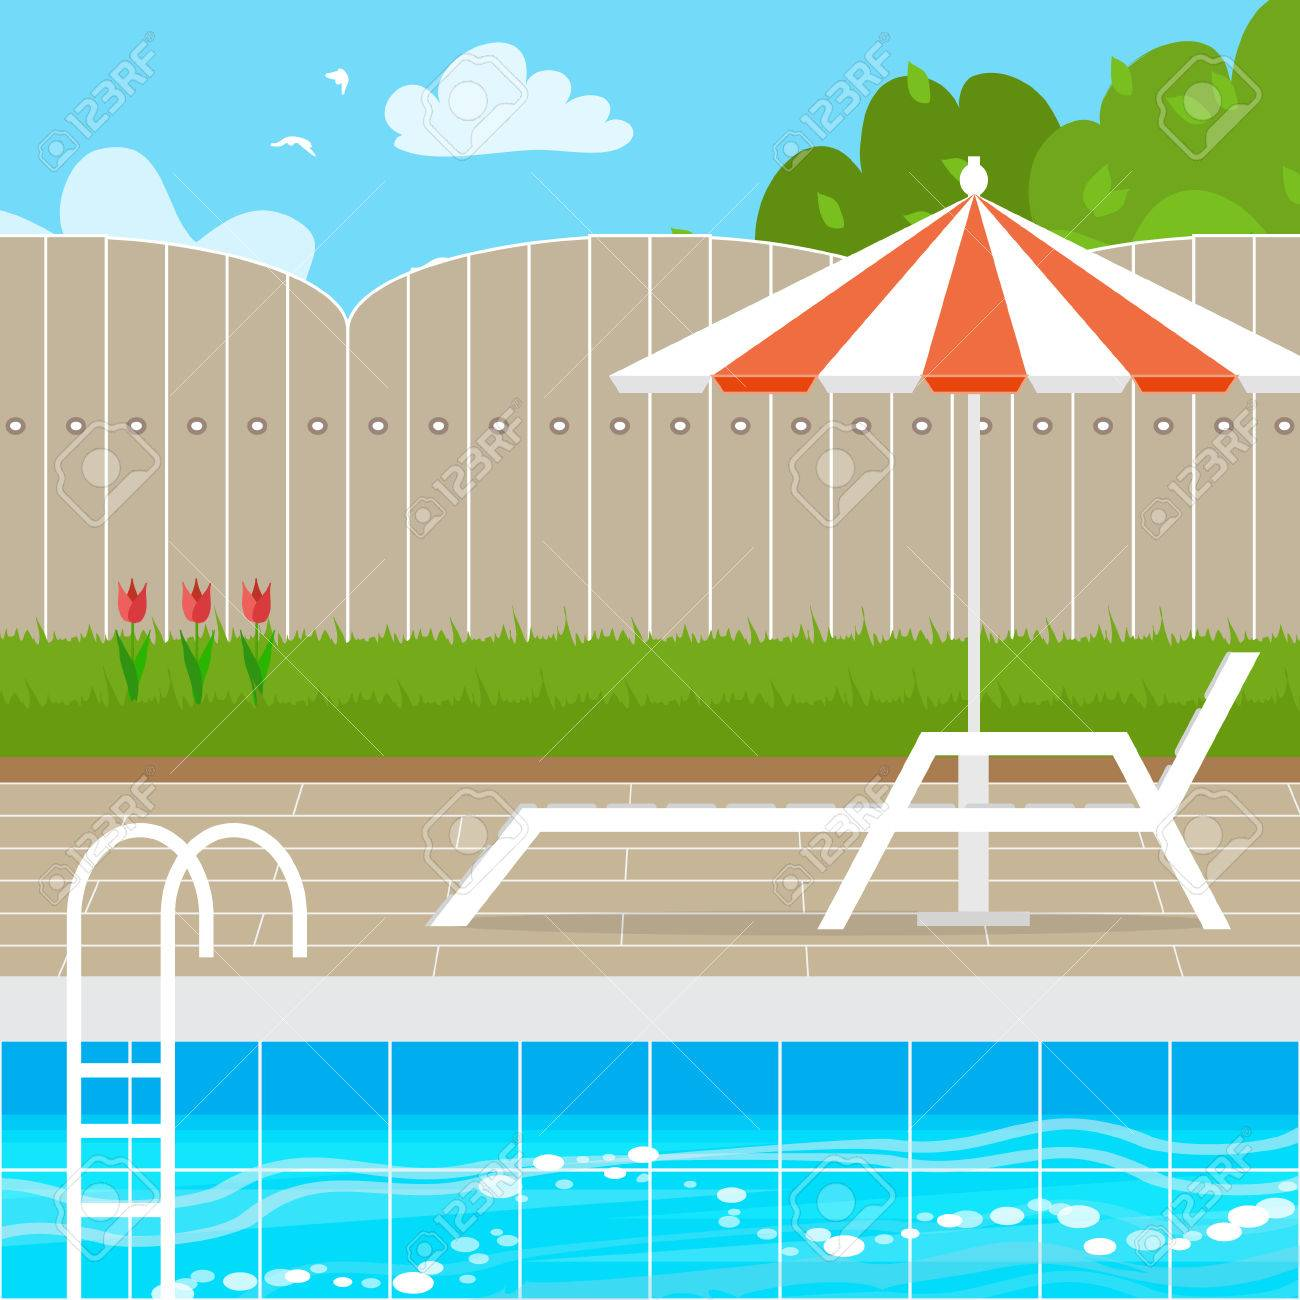 Chaise Lounge with Parasol umbrella near the Swimming pool. House..